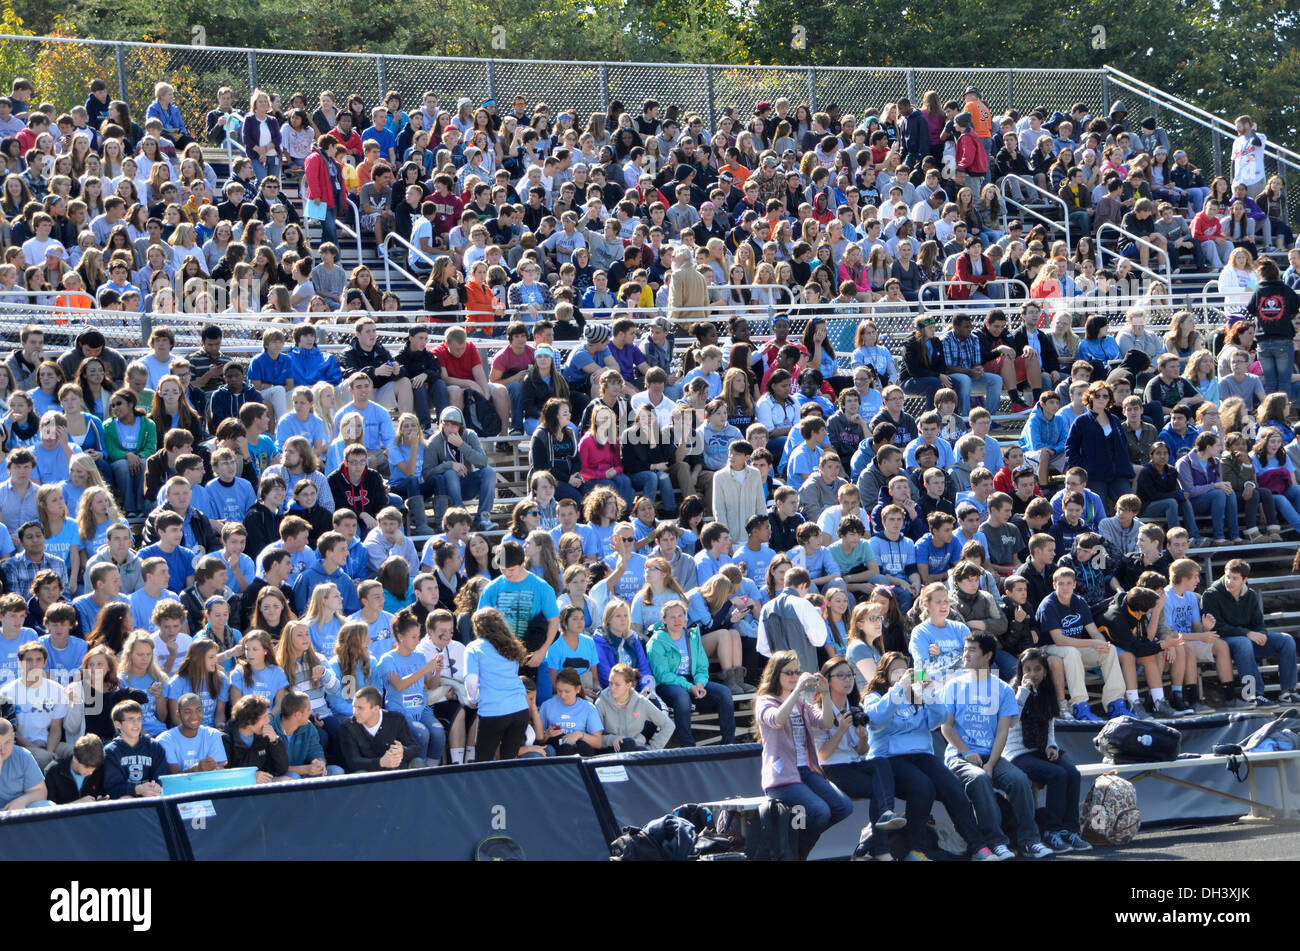 Crowd in the stands at a high school football game - Stock Image